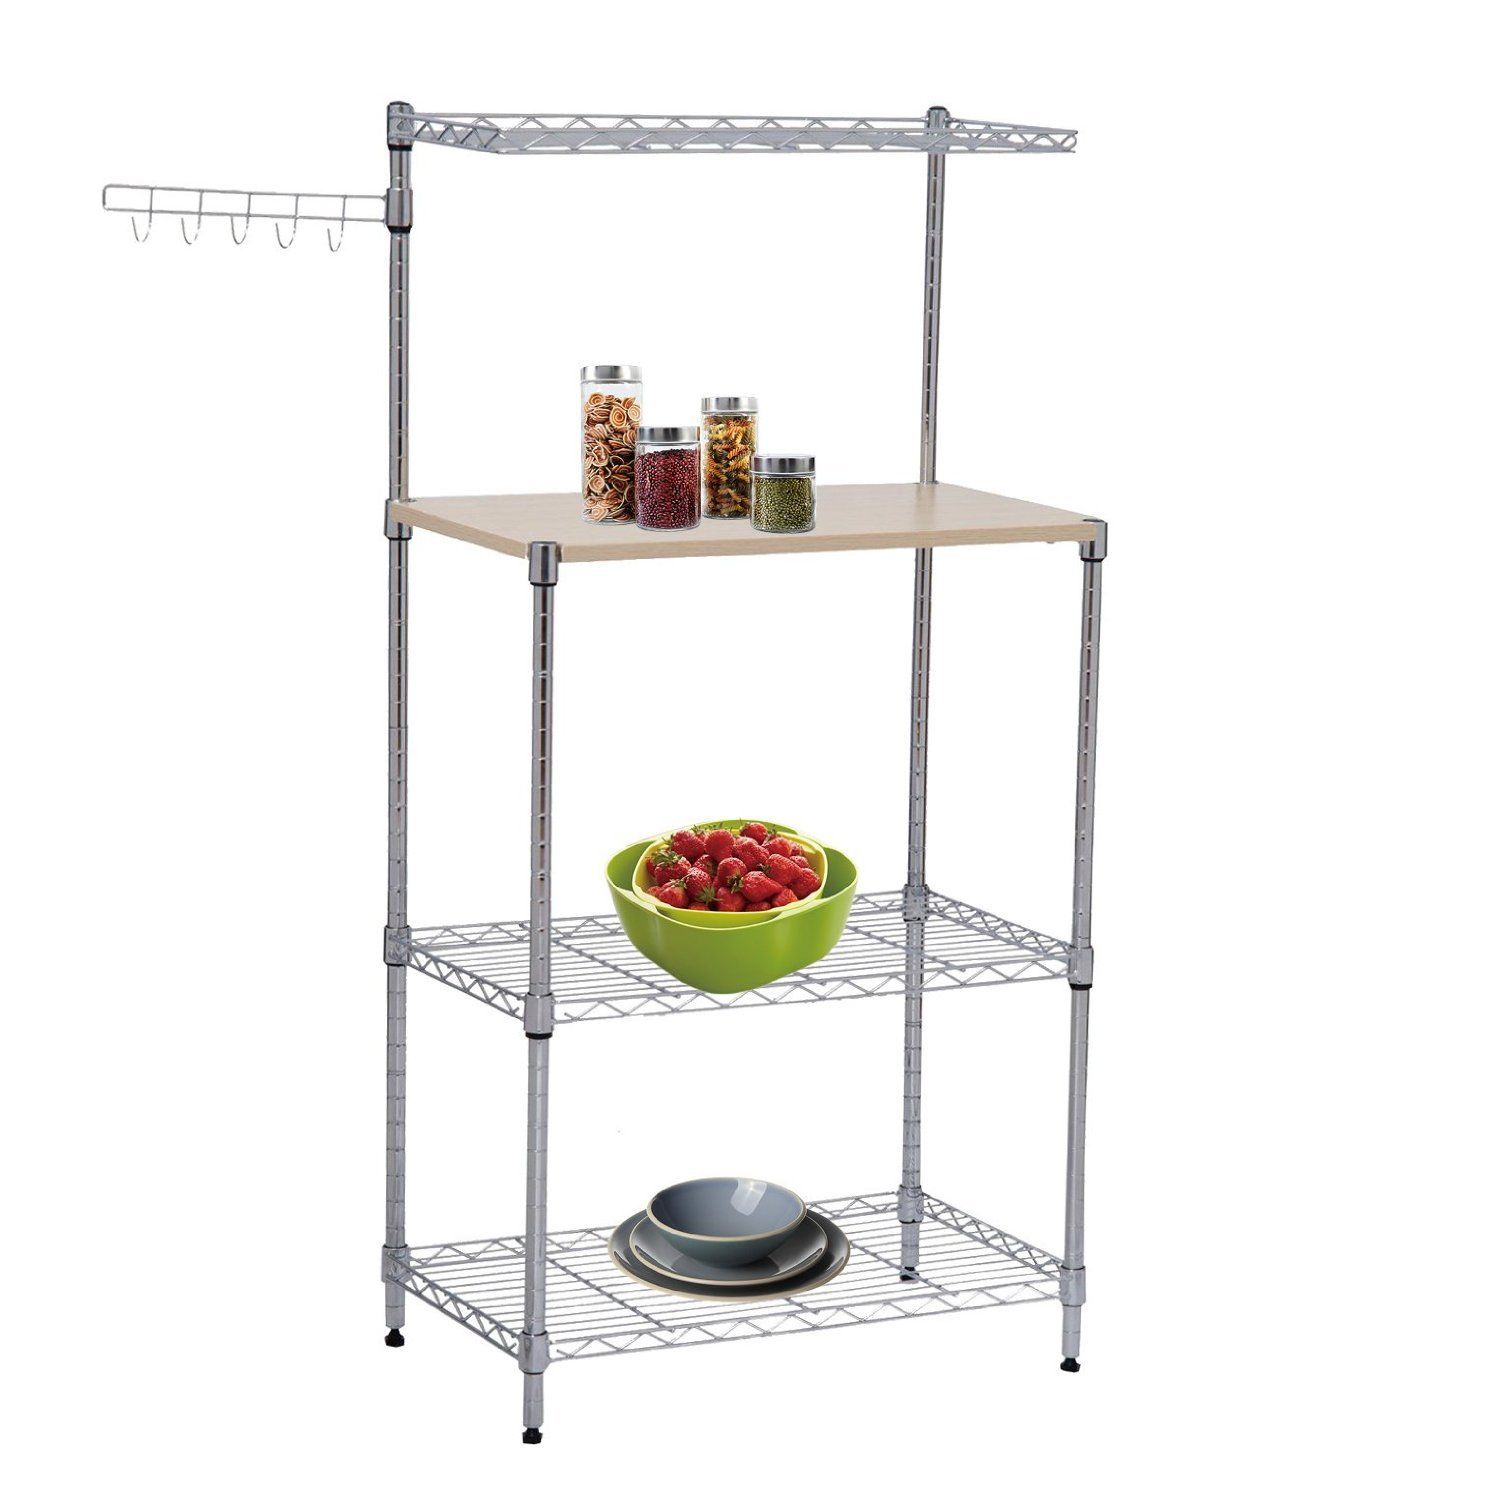 Tenive 3 Tier Kitchen Bakeru0027s Rack Microwave Oven Stand Storage Cart  Workstation Shelf